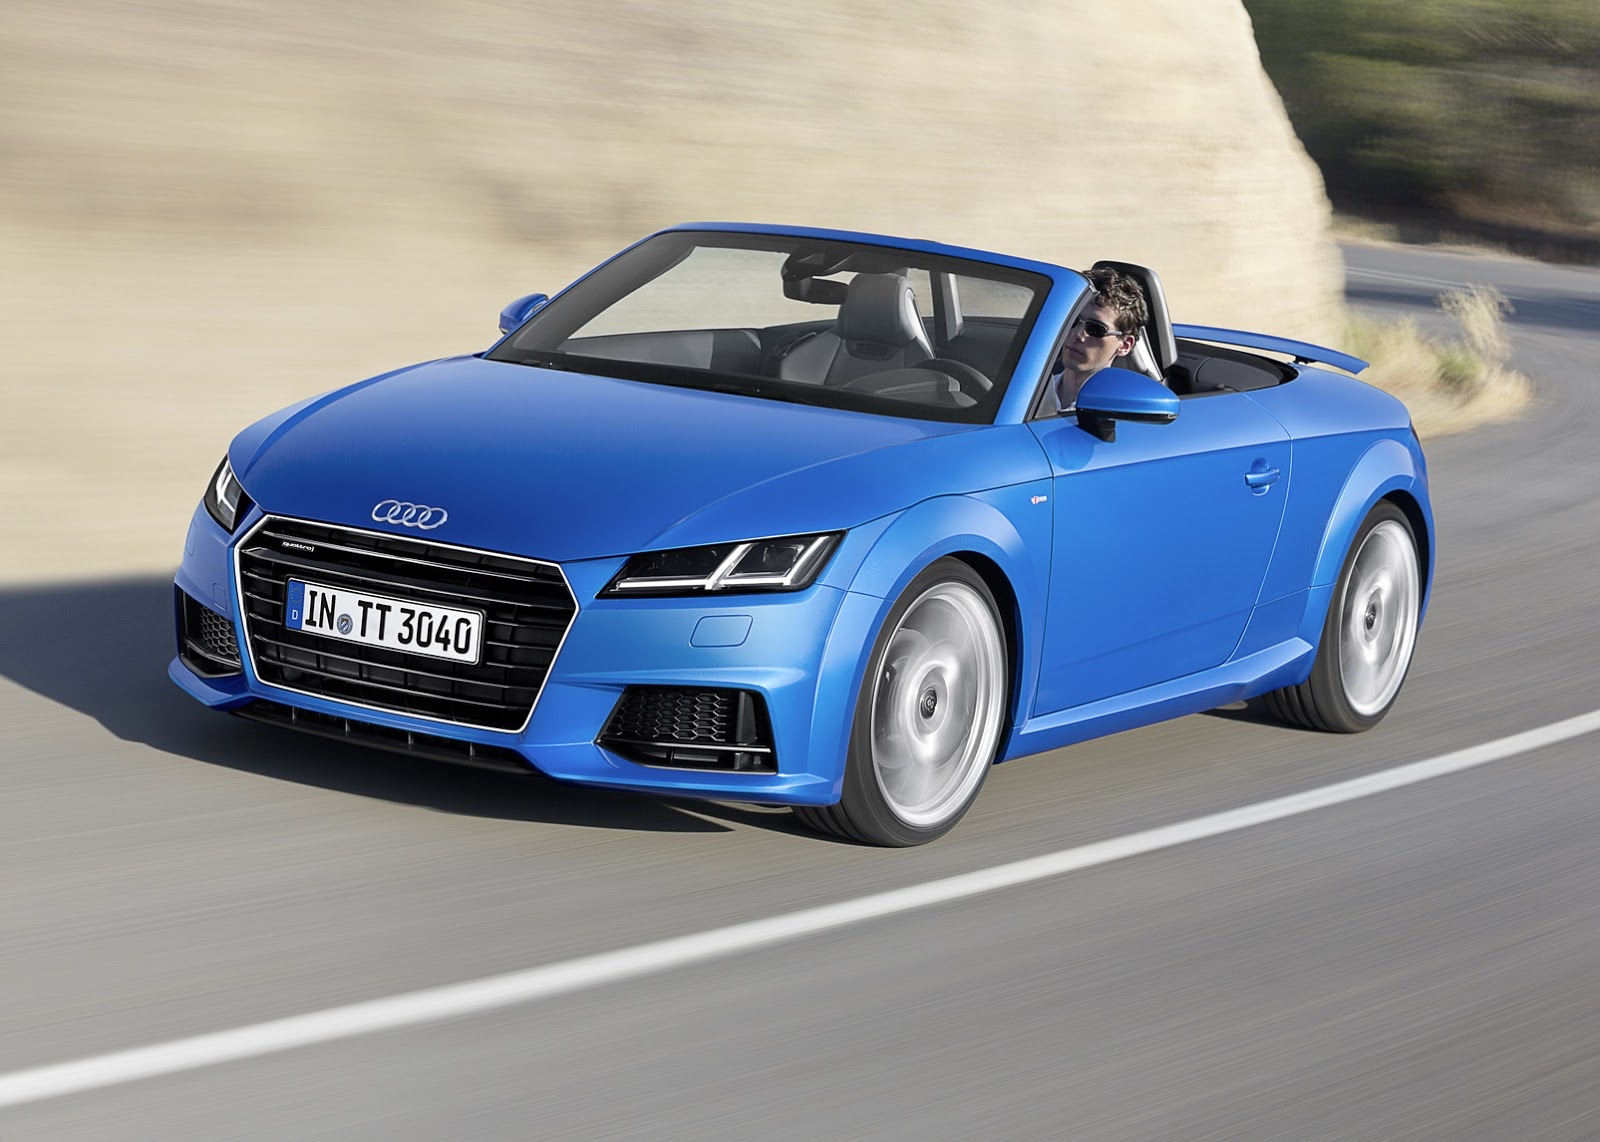 Audi A6 Wallpaper Hd 2015 Audi Tt And Tts Roadster Revealed Convertible In 10